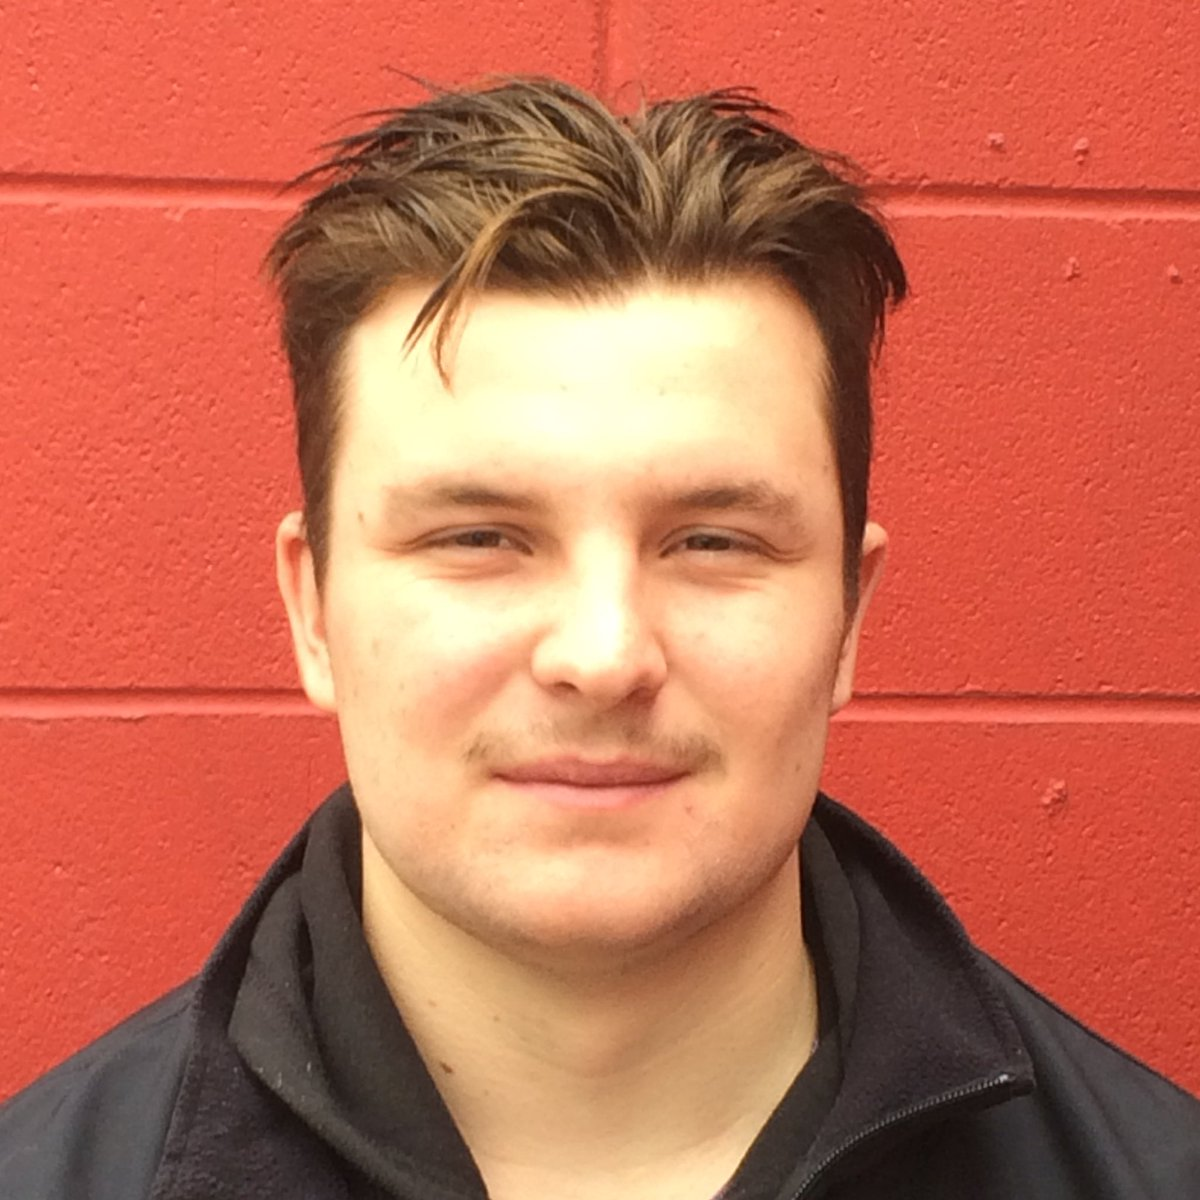 KIJHL: Newest Ghostrider excited to contribute physically, offensively